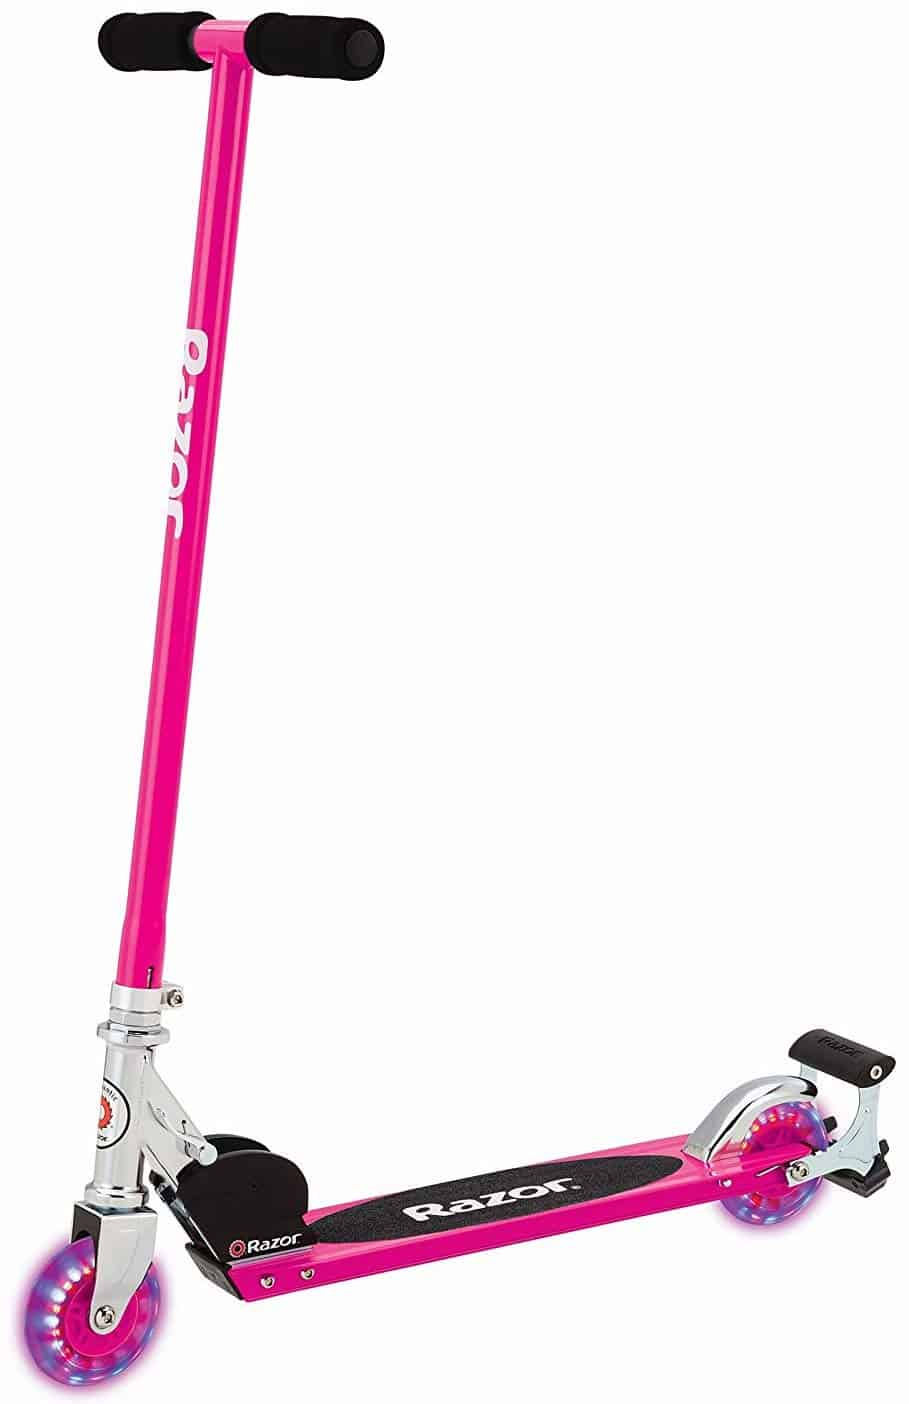 Best Electric Scooter for Kids - Razor